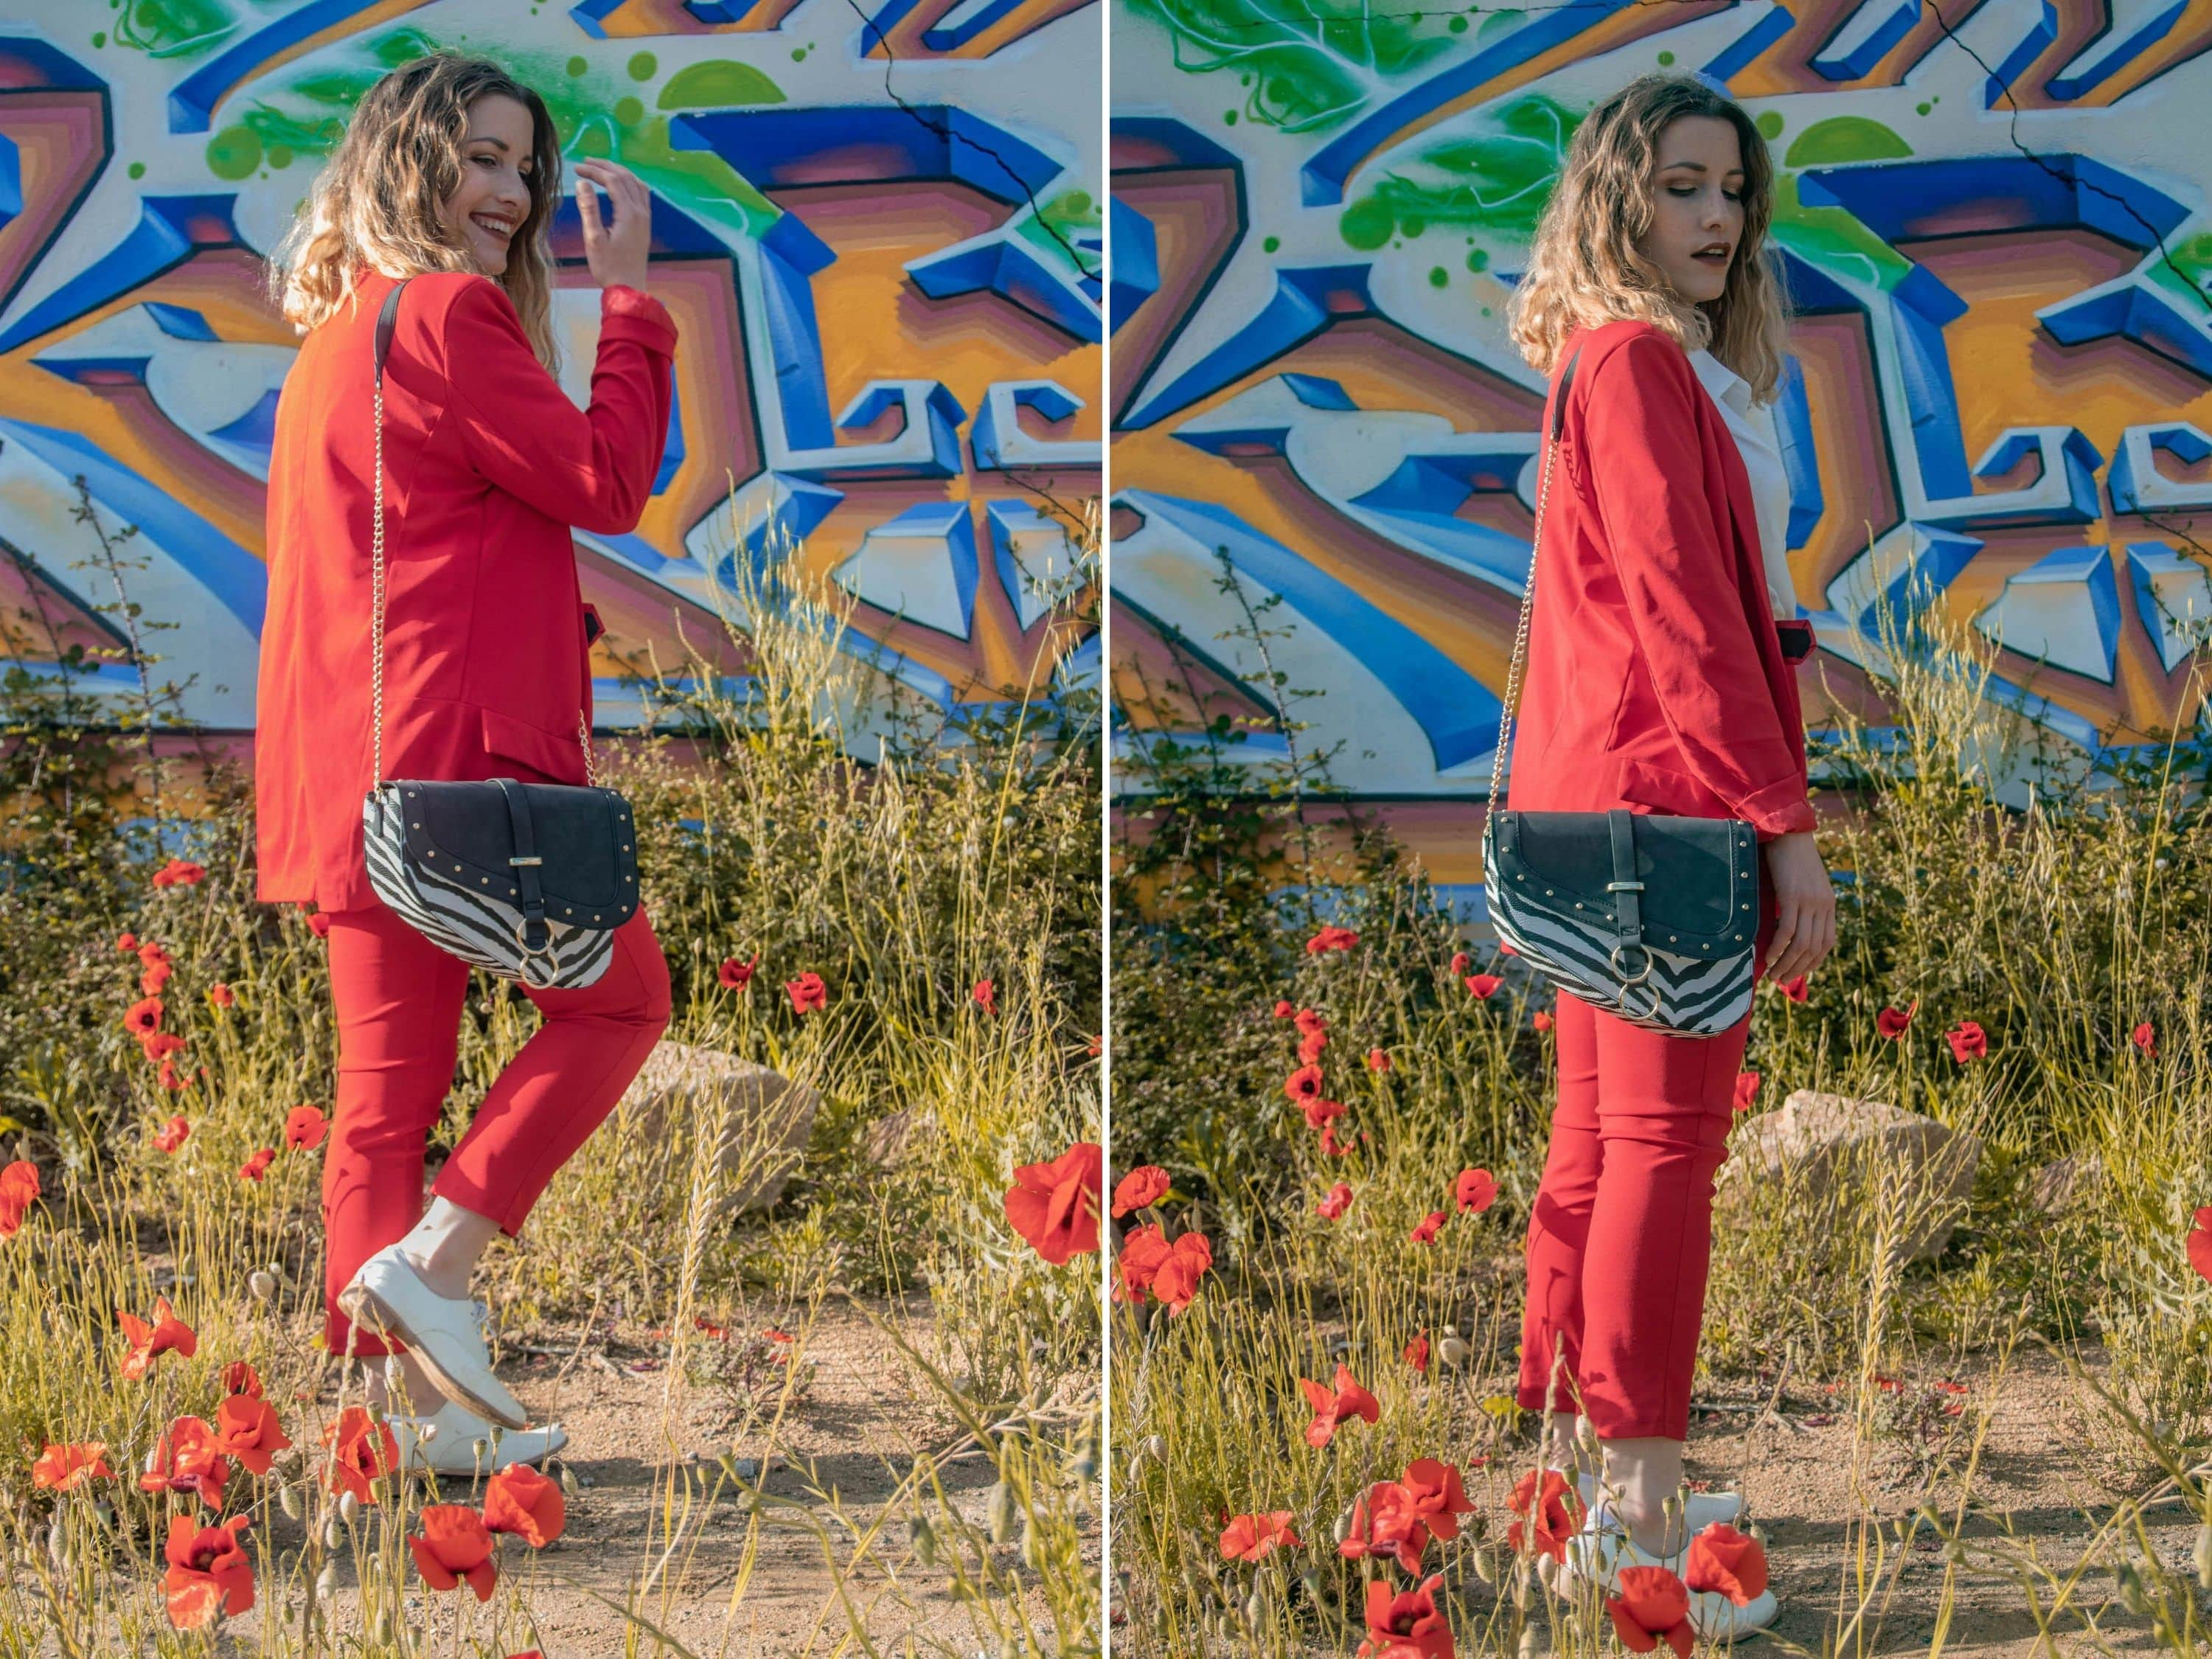 Comment porter le tailleur rouge boohoo ? - happinesscoco.com